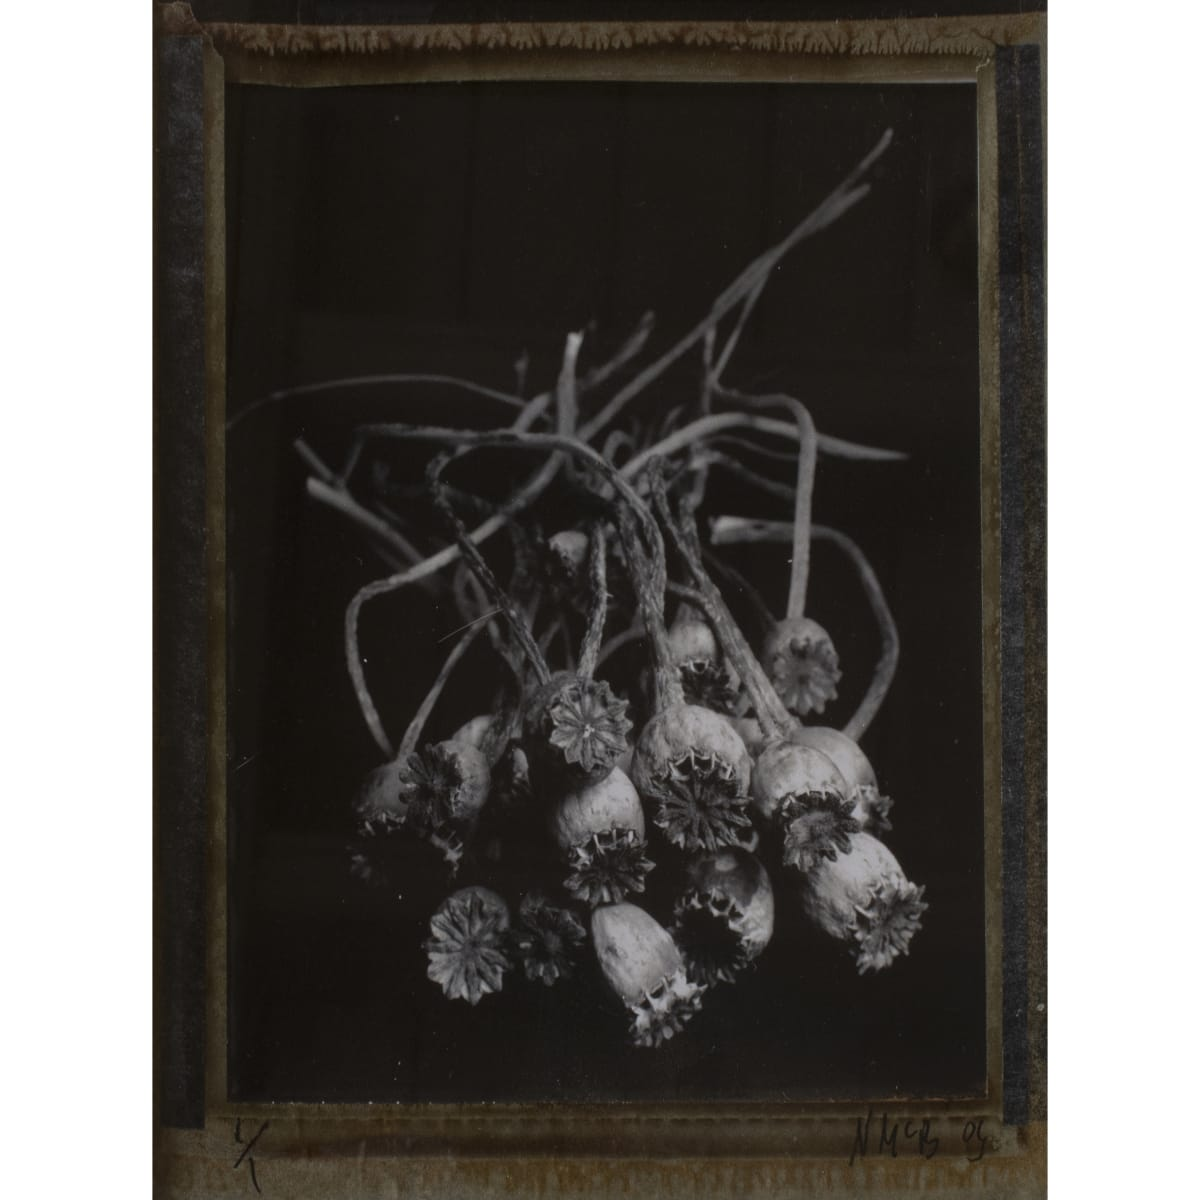 Norman McBeath Type 55 Polaroid: Poppy Heads, 2009 signed and dated type 55 polaroid 13 x 10.2 cm